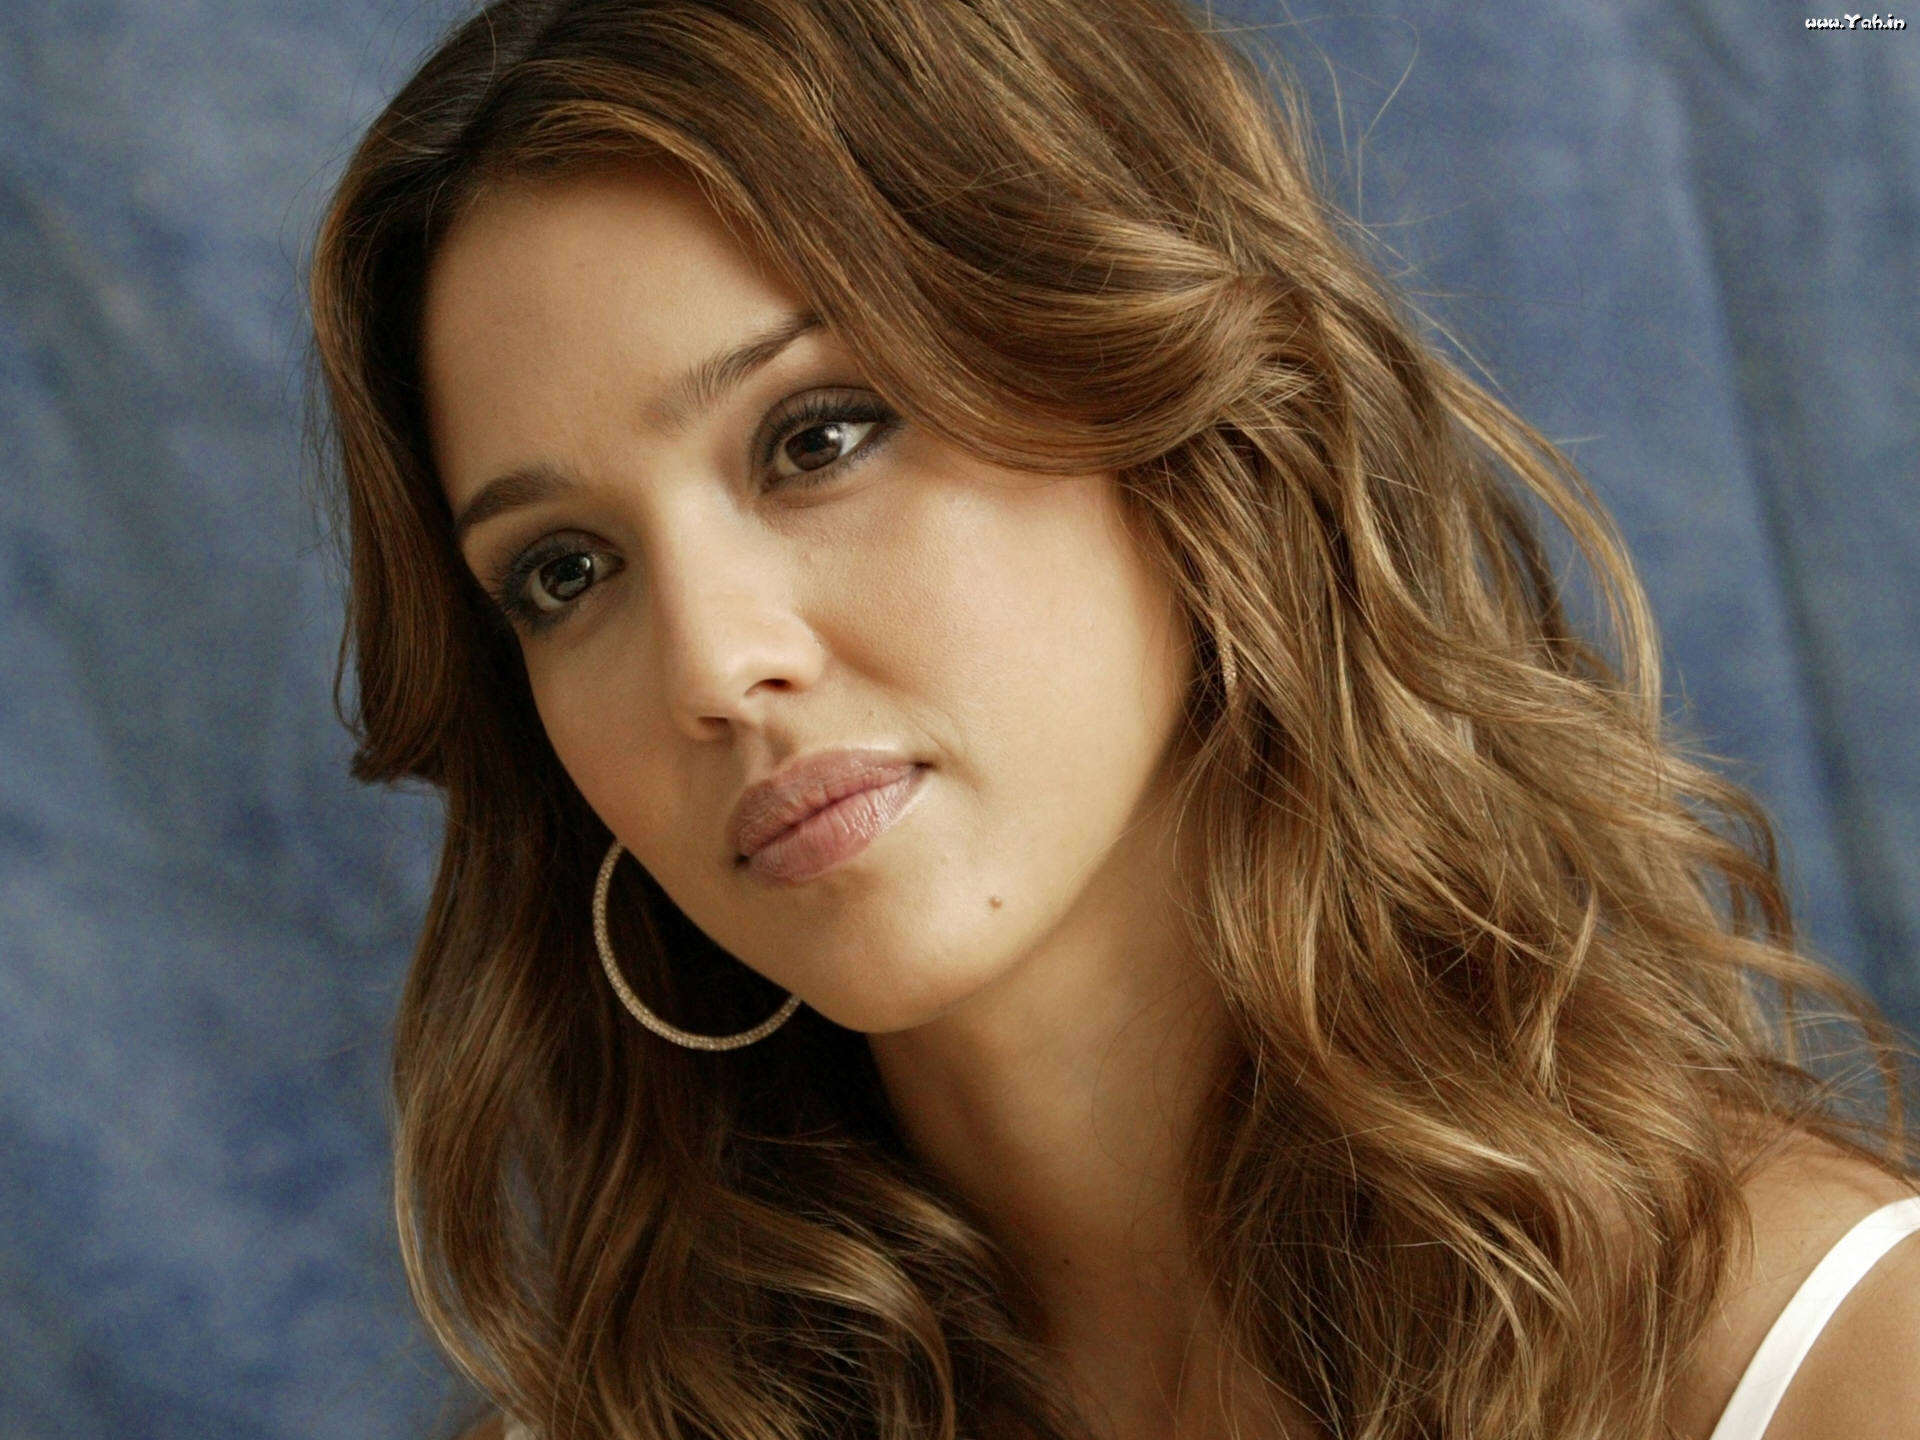 Jessica Alba Smile 31 13110 HD Images Wallpapers